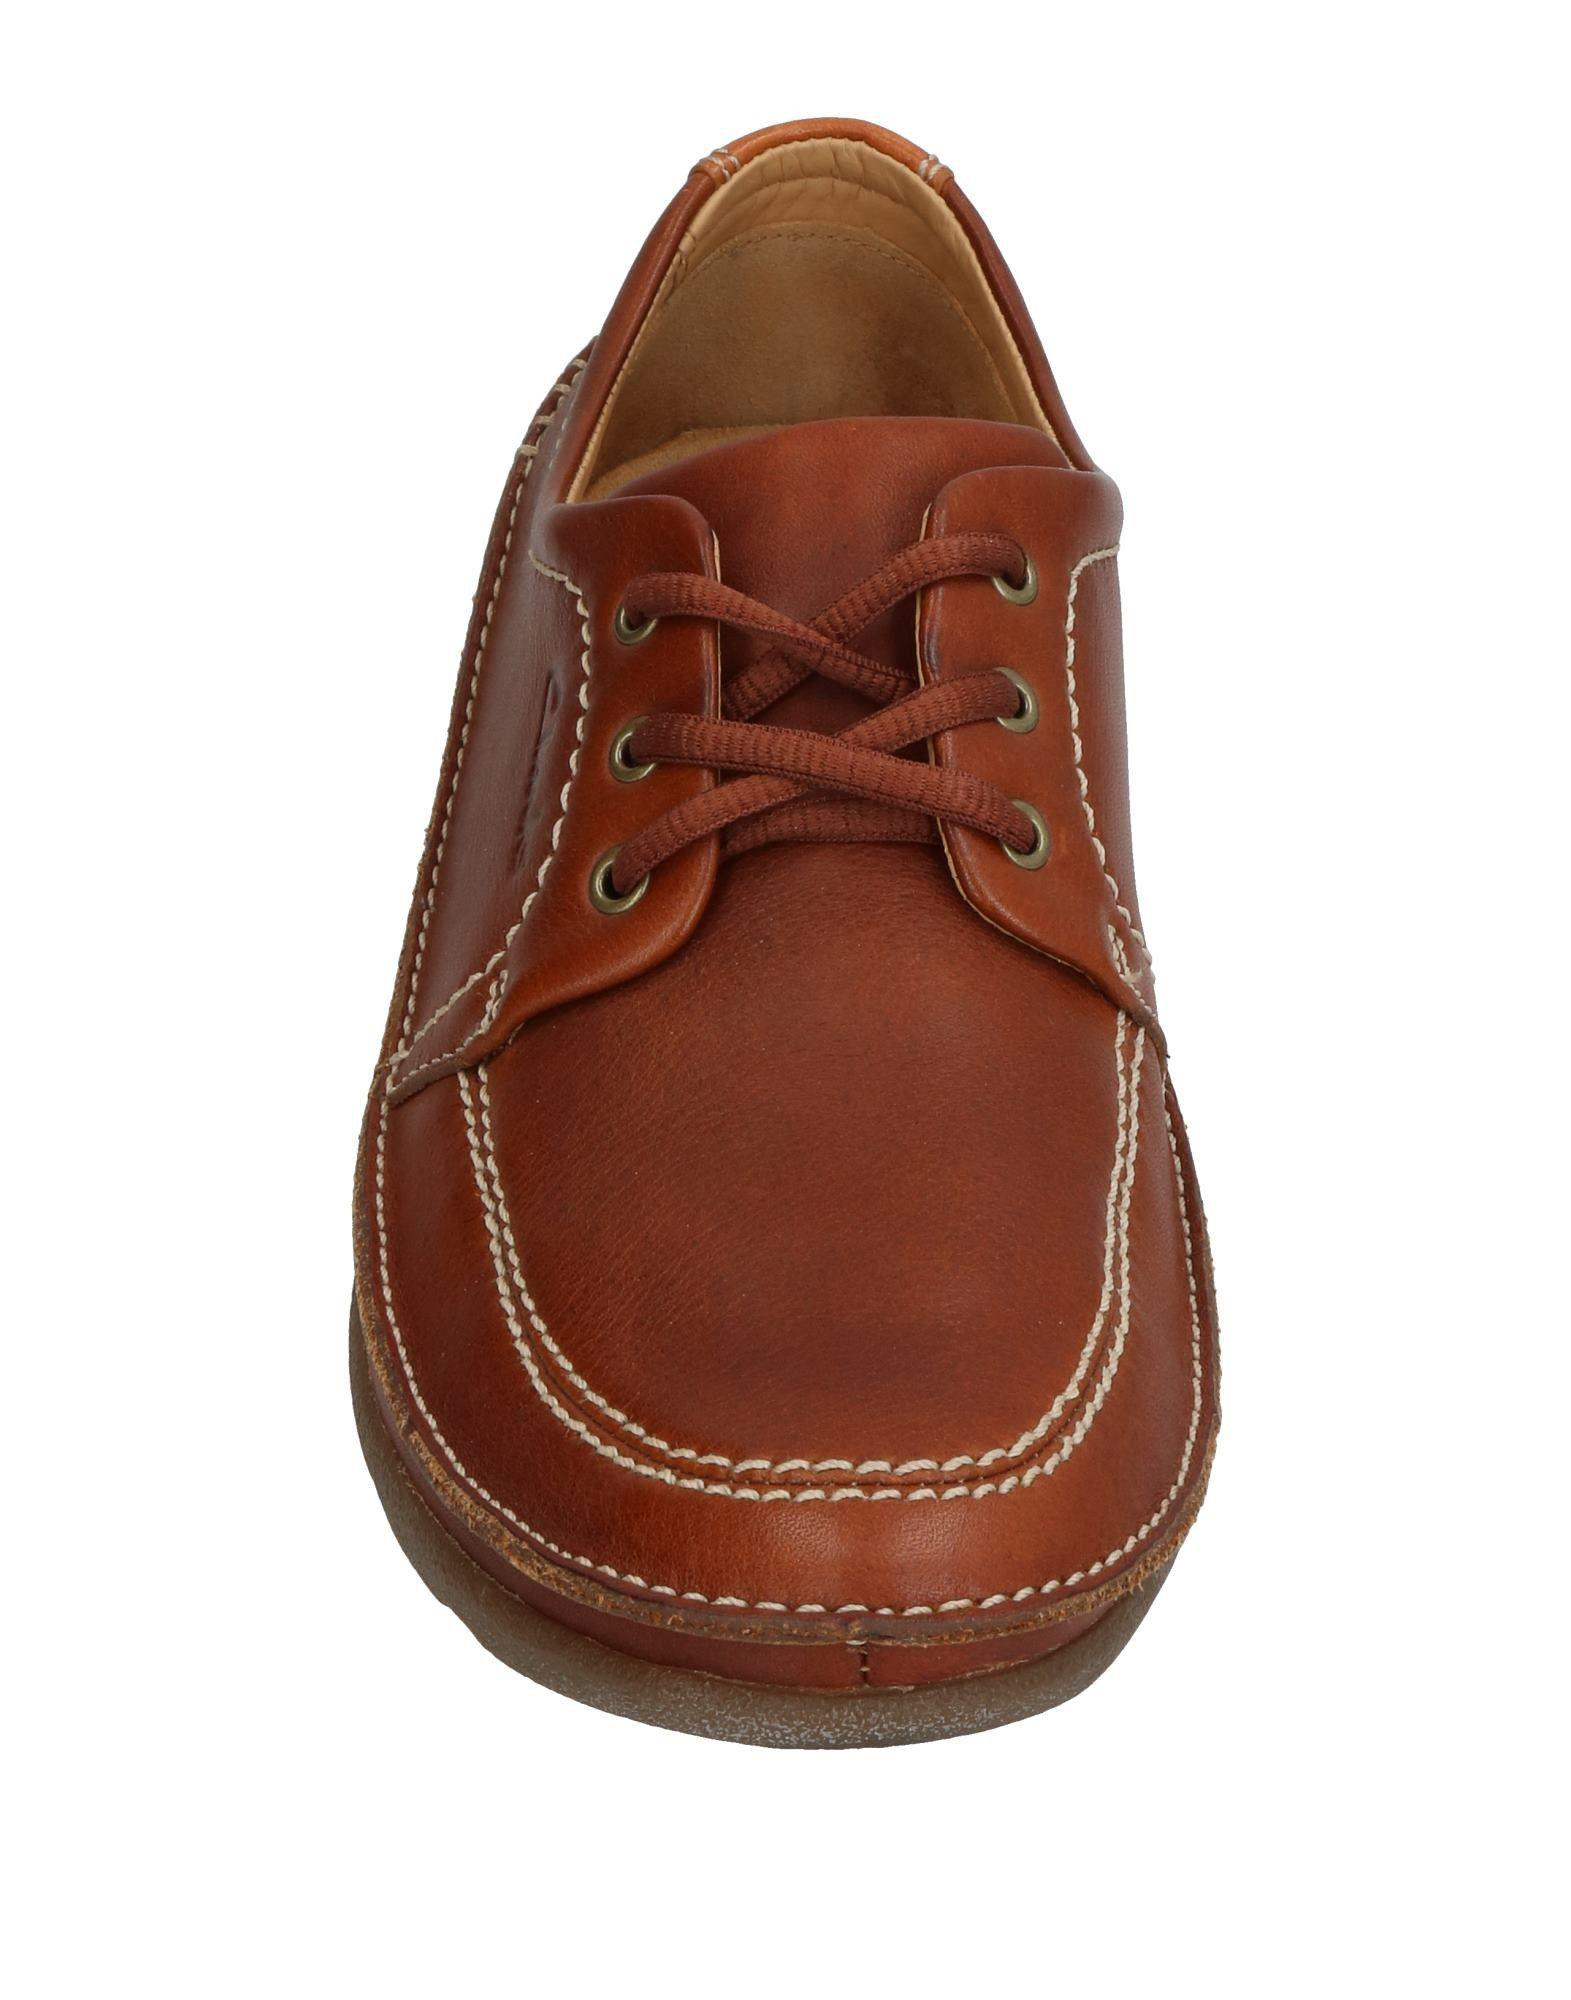 Clarks Leather Lace-up Shoe in Brown for Men